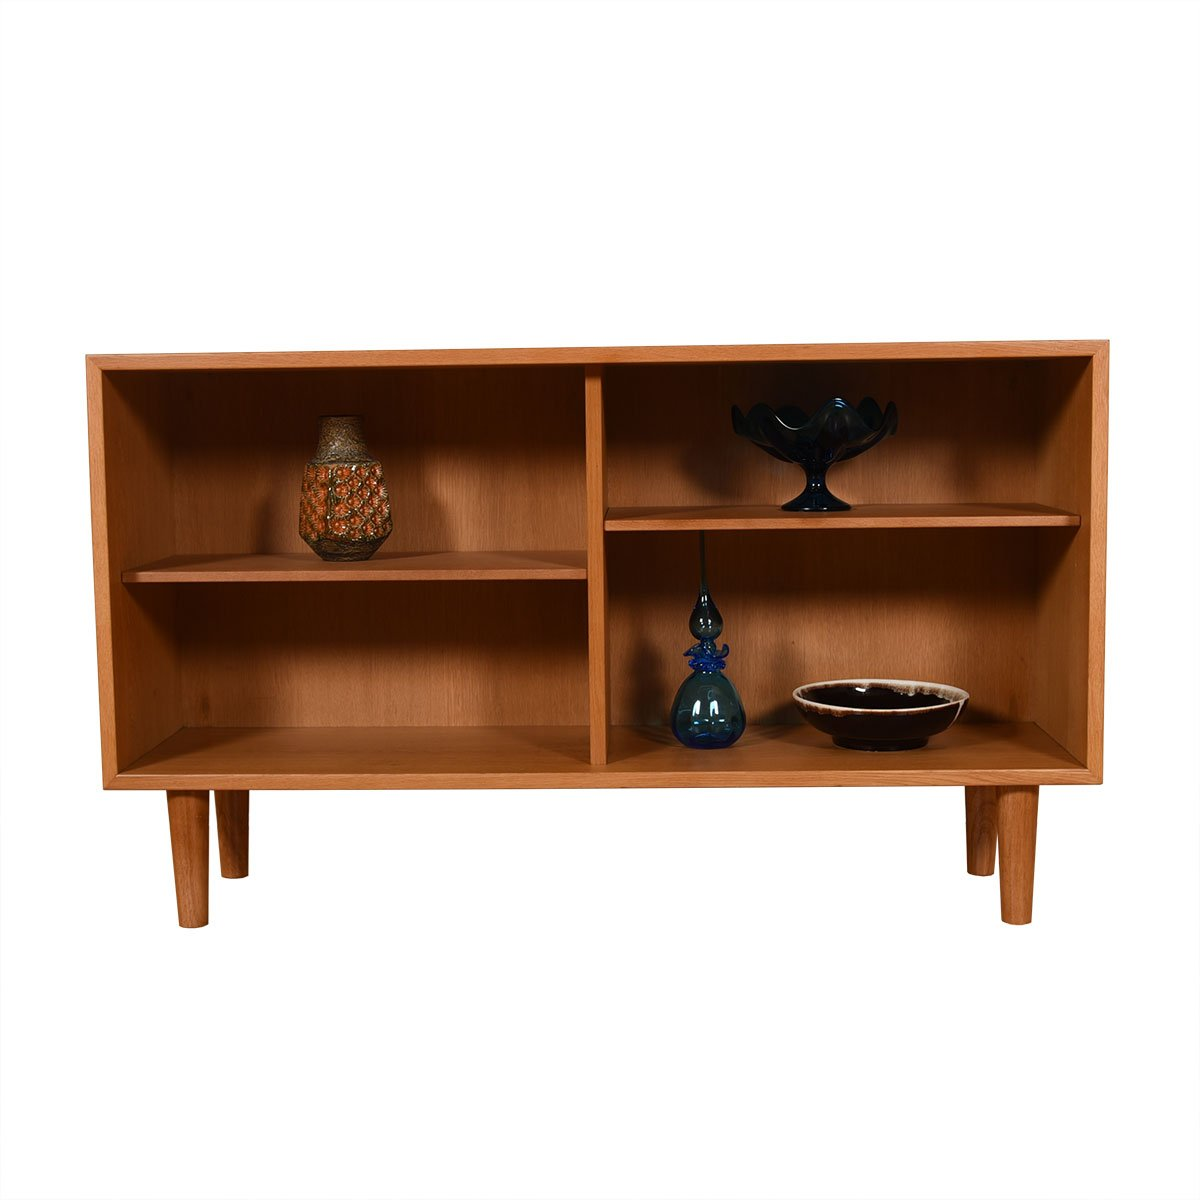 14.25″ Deep Borge Mogensen Oak Open Bookcase for Karl Anderssons